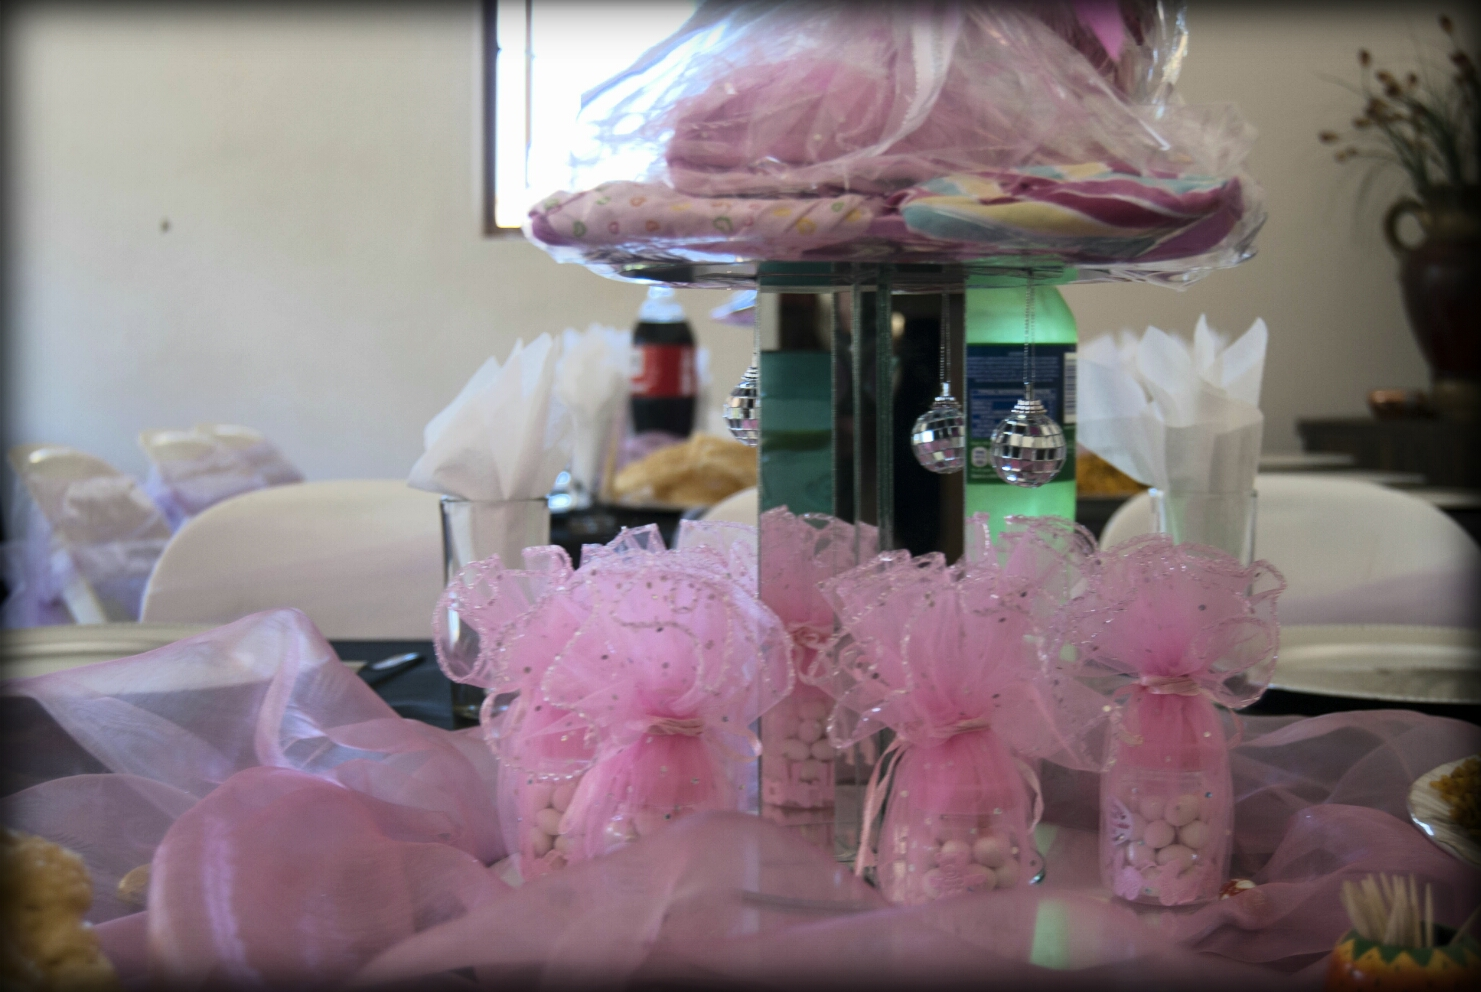 venue inclusive of full baby shower or bridal shower decor and